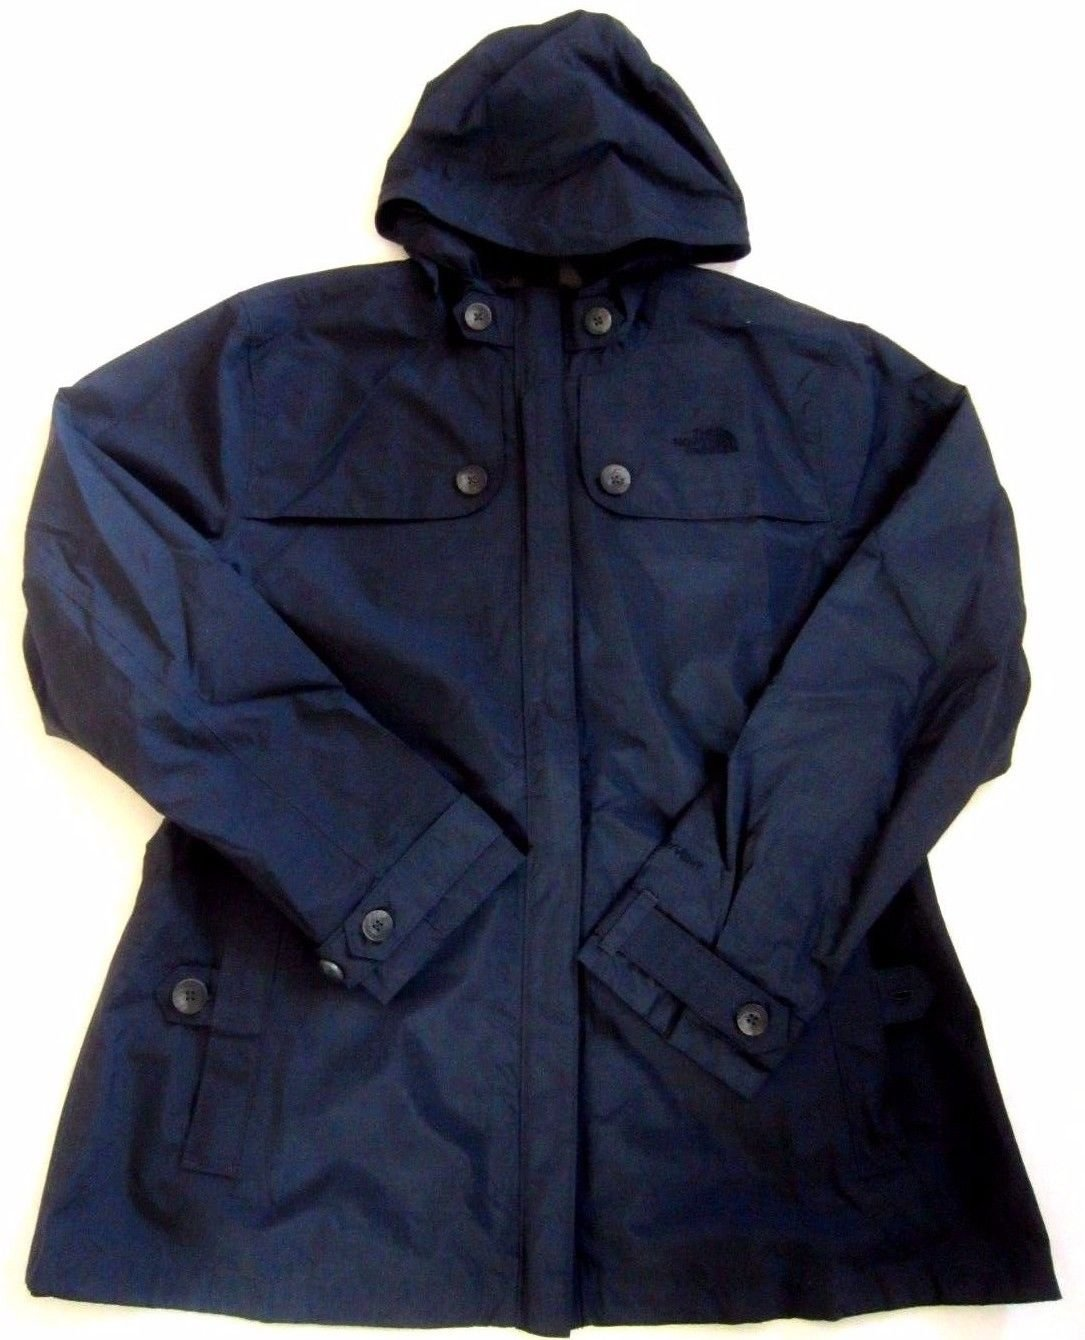 THE NORTH FACE Carli Jacket damen Wetterschutz Regenjacke navy XL 42